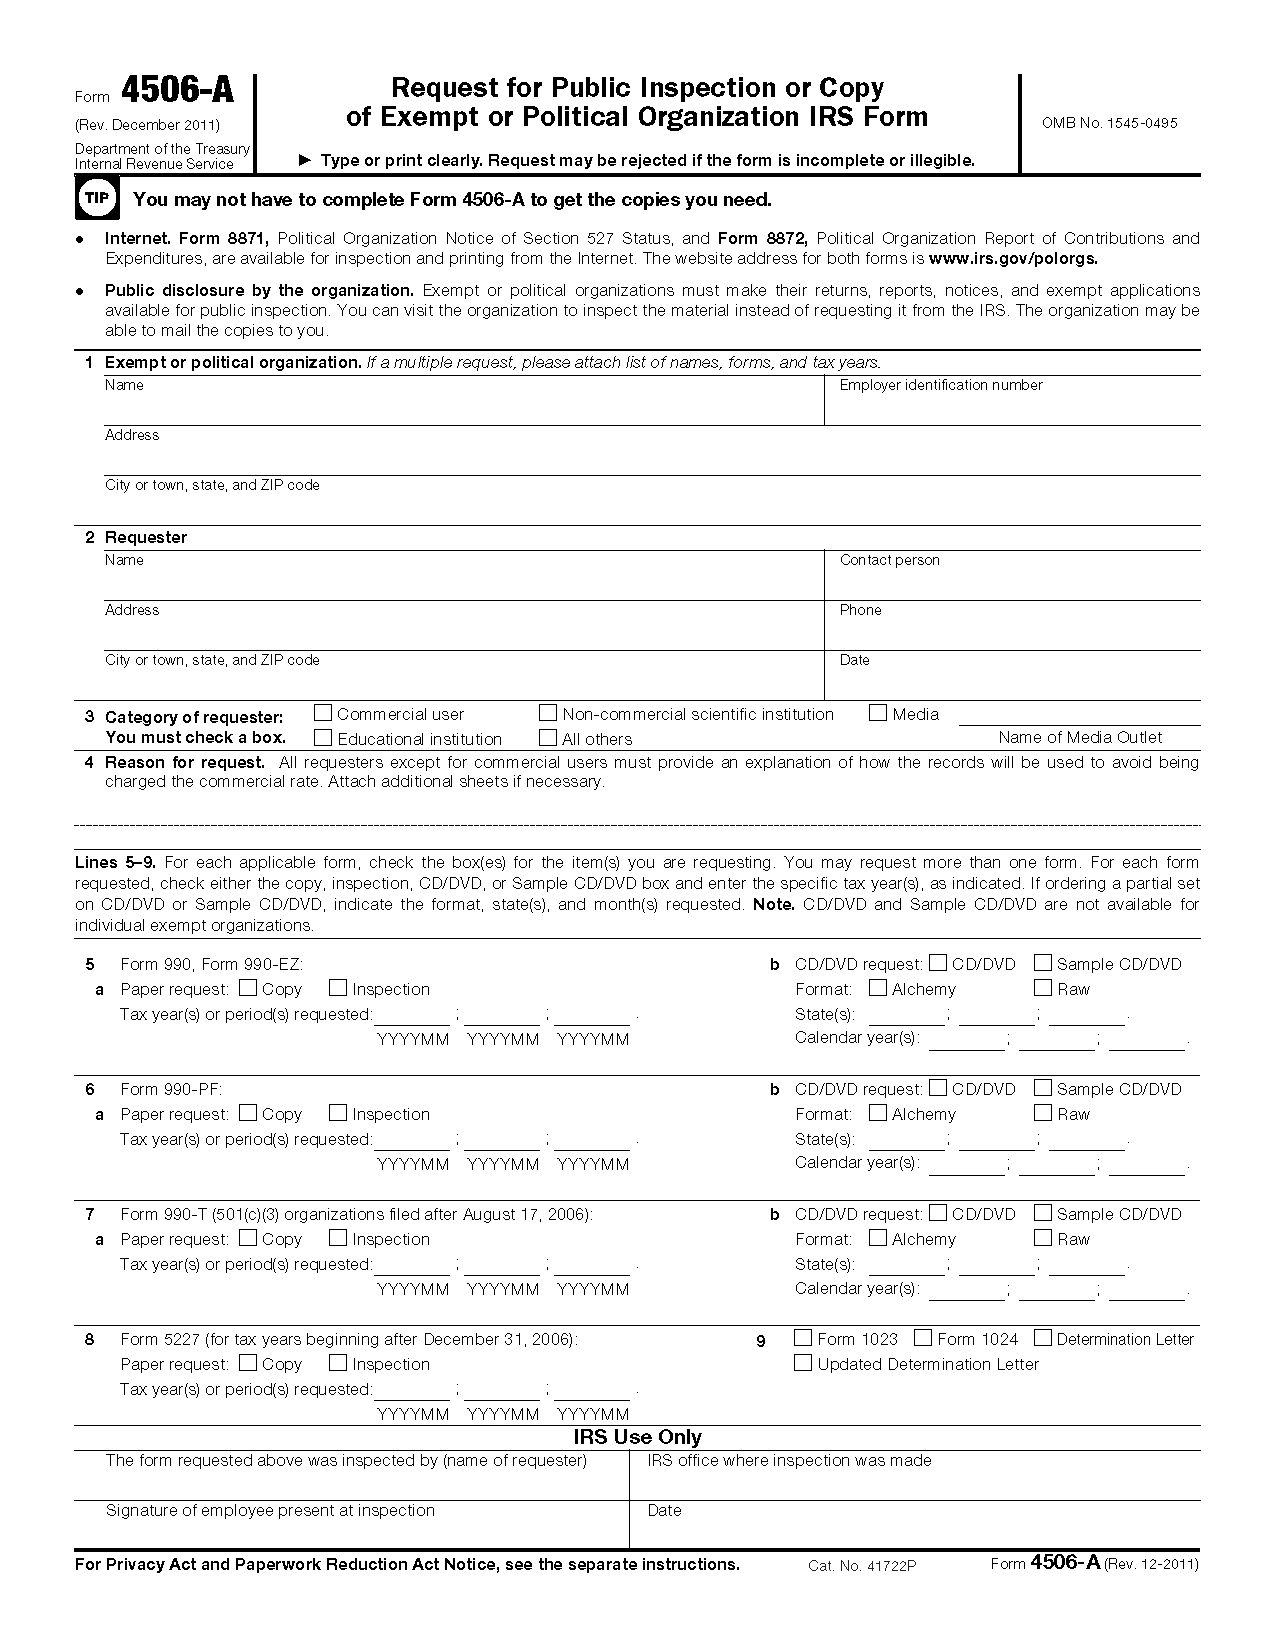 Form 4506-A Request for Public Inspection or Copy of Exempt or ...